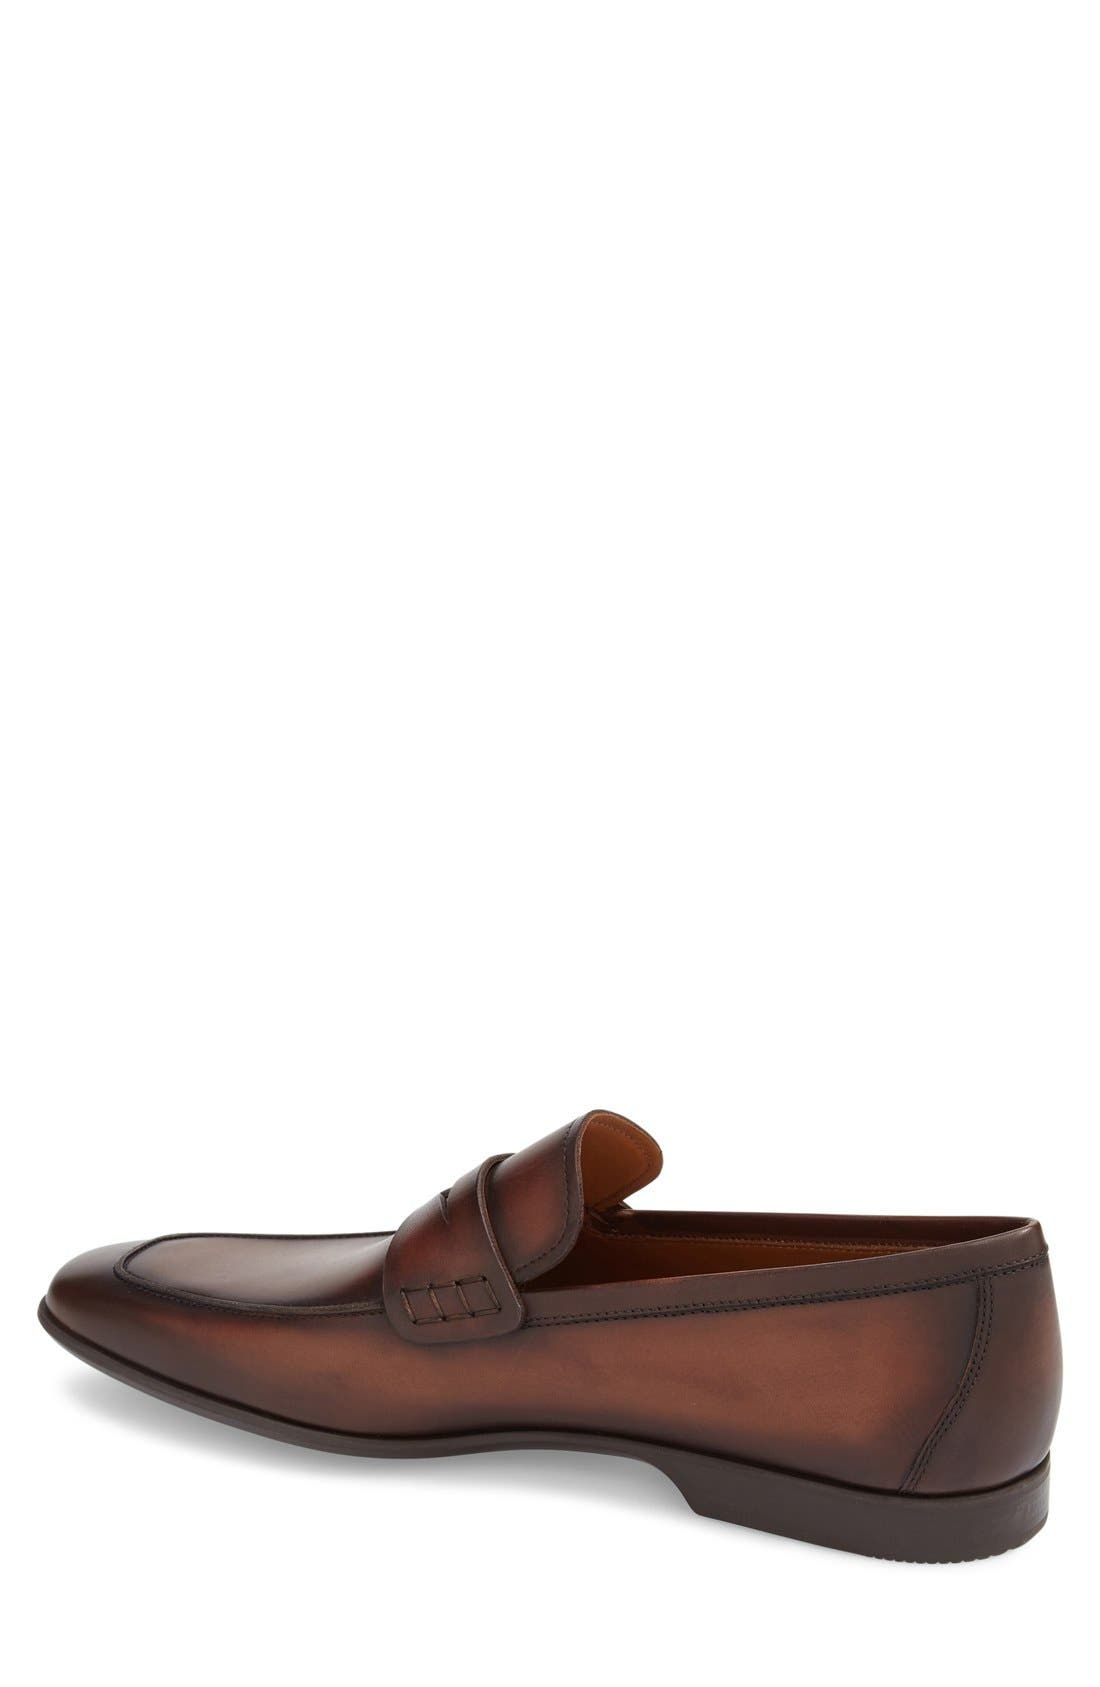 'Ramiro II' Penny Loafer,                             Alternate thumbnail 3, color,                             MID BROWN LEATHER